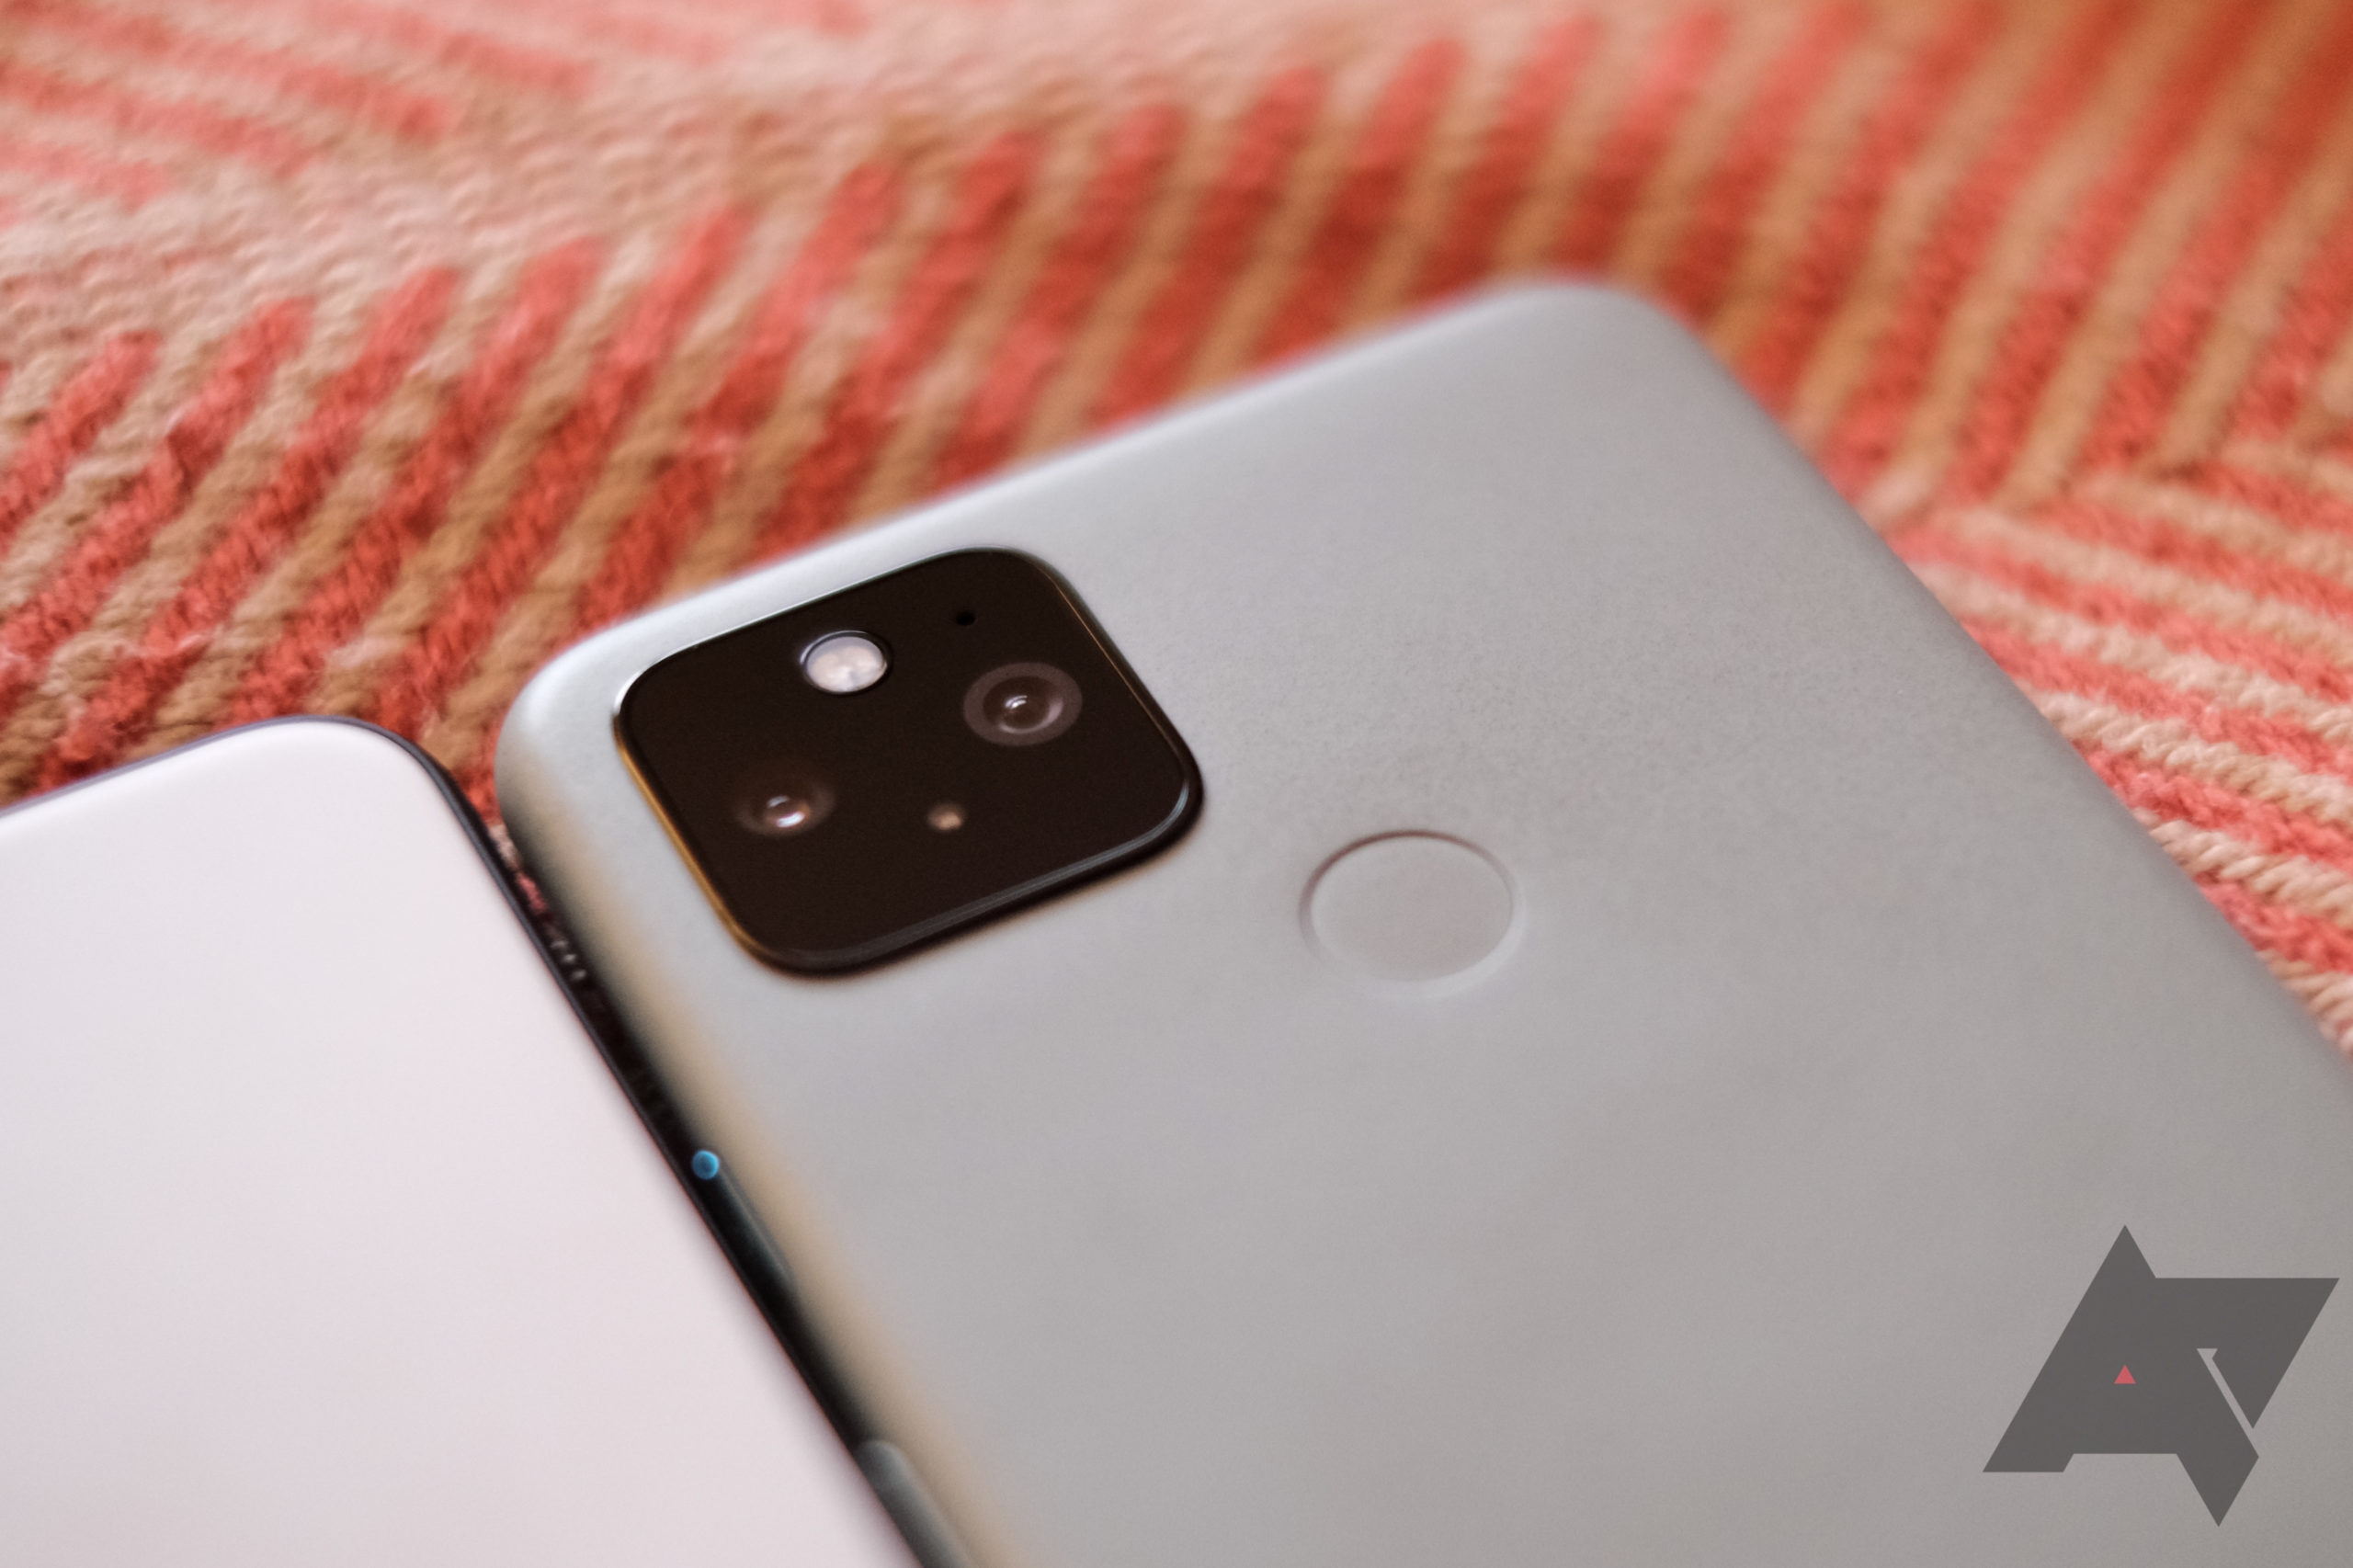 The Pixel 5 hisses after every vibration, and we can't unhear it